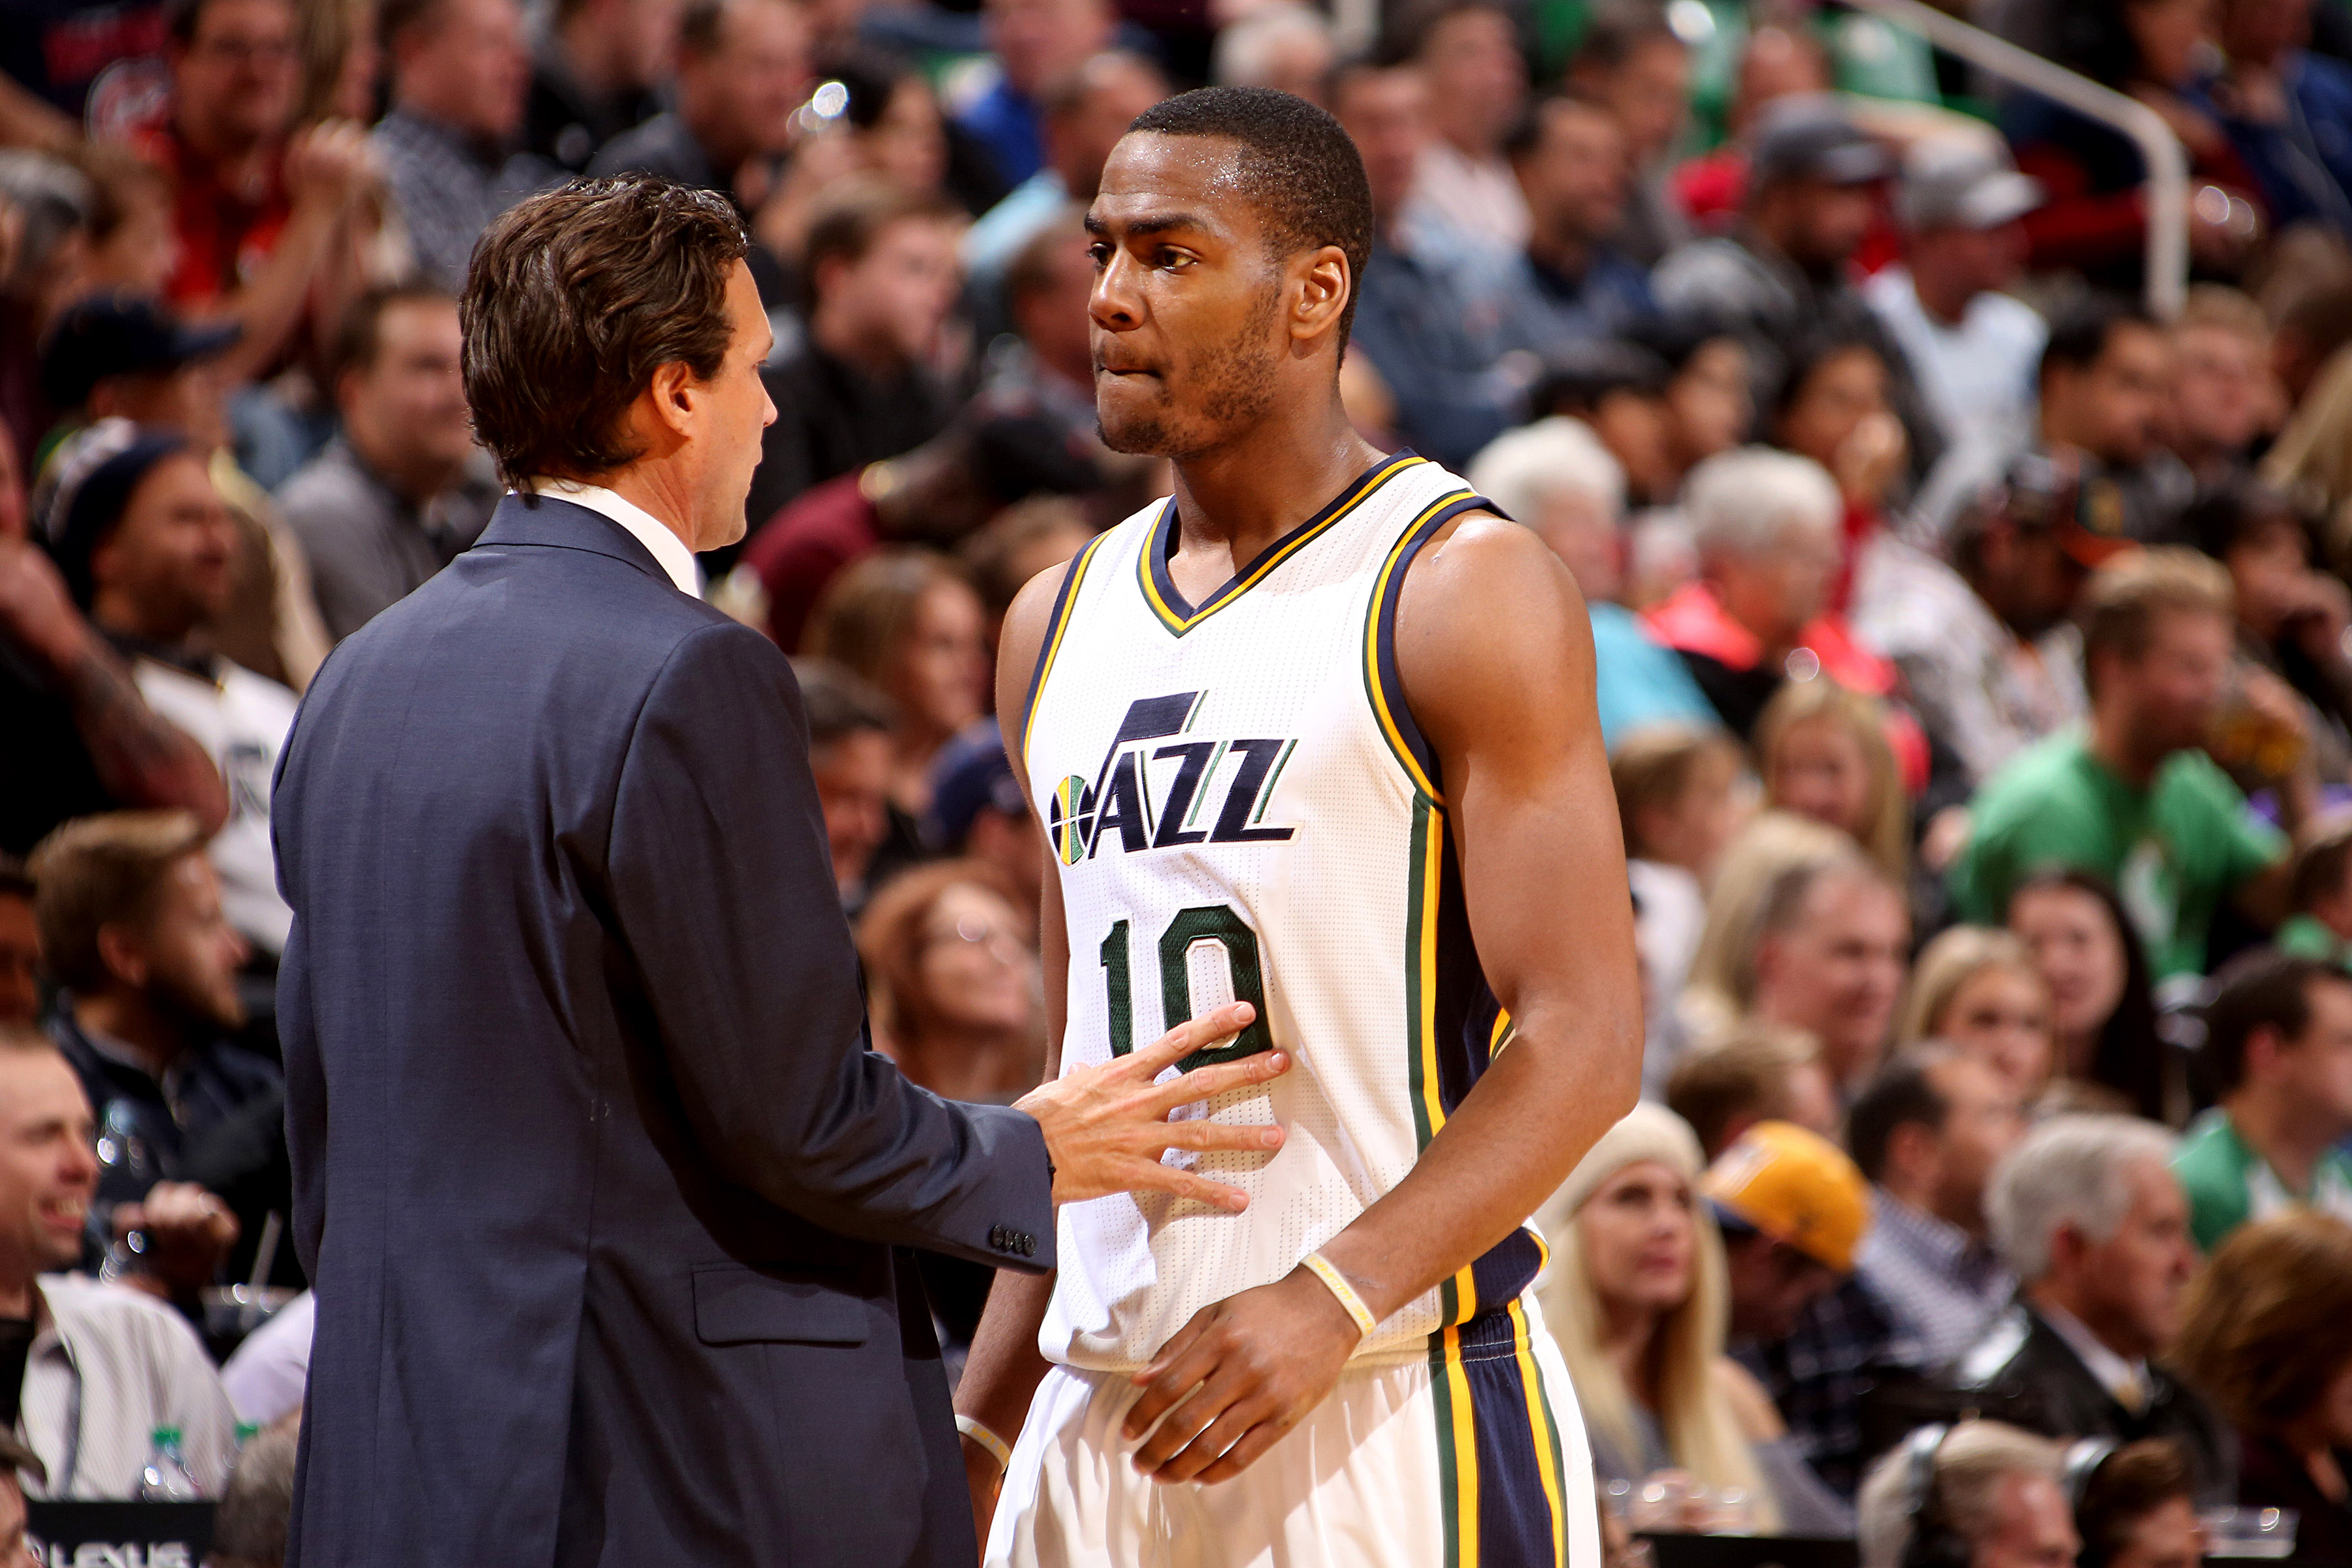 SALT LAKE CITY, UT - NOVEMBER 18: Alec Burks #10 of the Utah Jazz discusses with Quin Snyder of the Utah Jazz during the game against the Toronto Raptors on November 18, 2015 at EnergySolutions Arena in Salt Lake City, Utah. (Photo by Melissa Majchrzak/NB